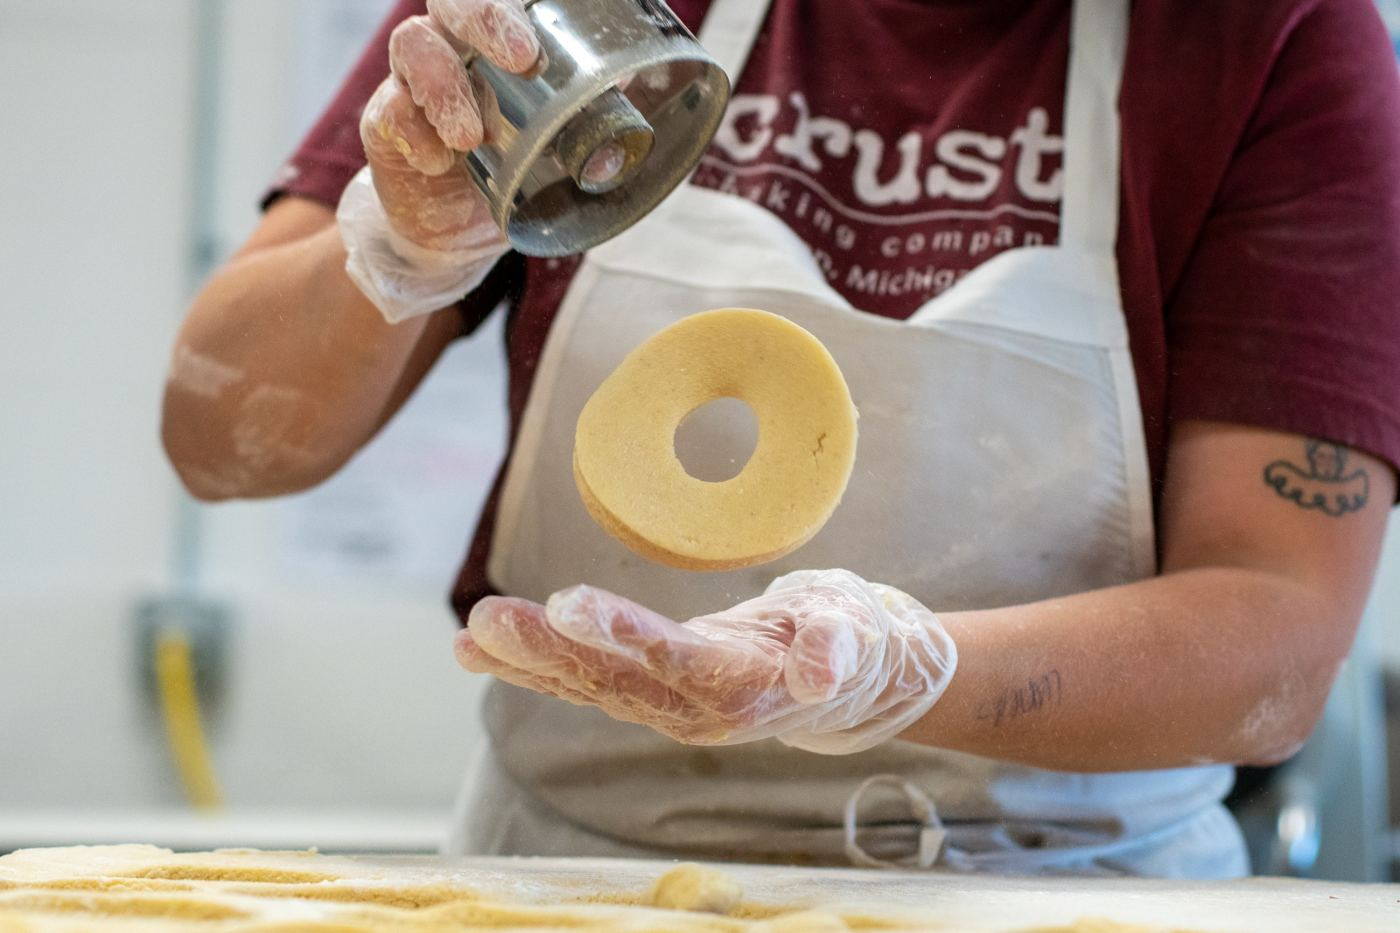 Crust, a baking company, baker making doughnuts